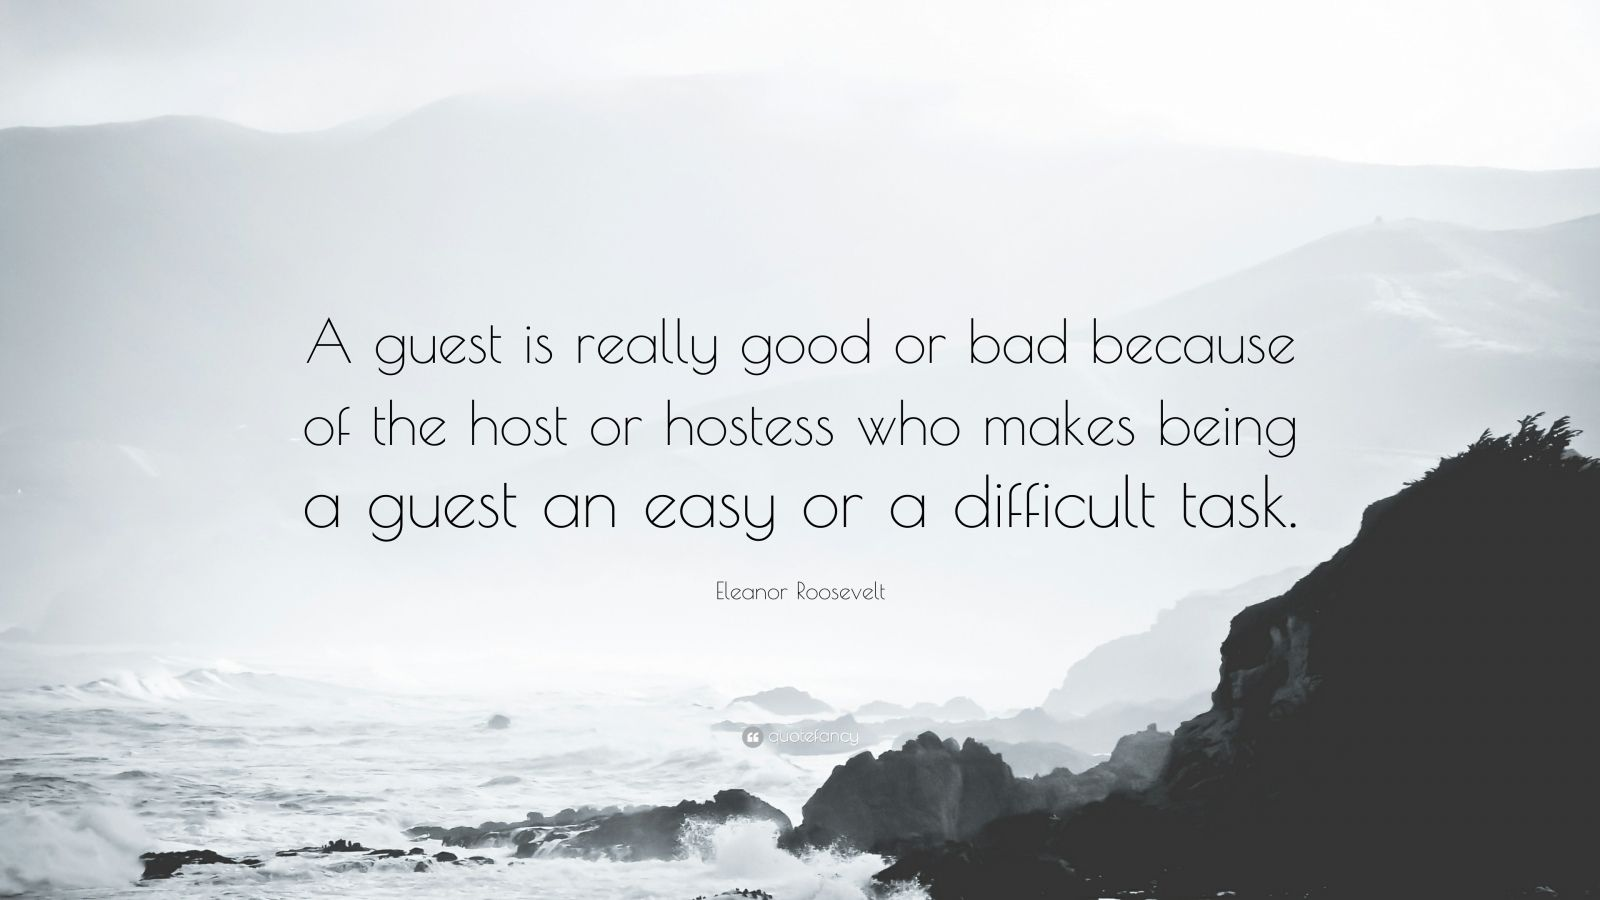 """Eleanor Roosevelt Quote: """"A guest is really good or bad because of the host or hostess who makes being a guest an easy or a difficult task."""""""